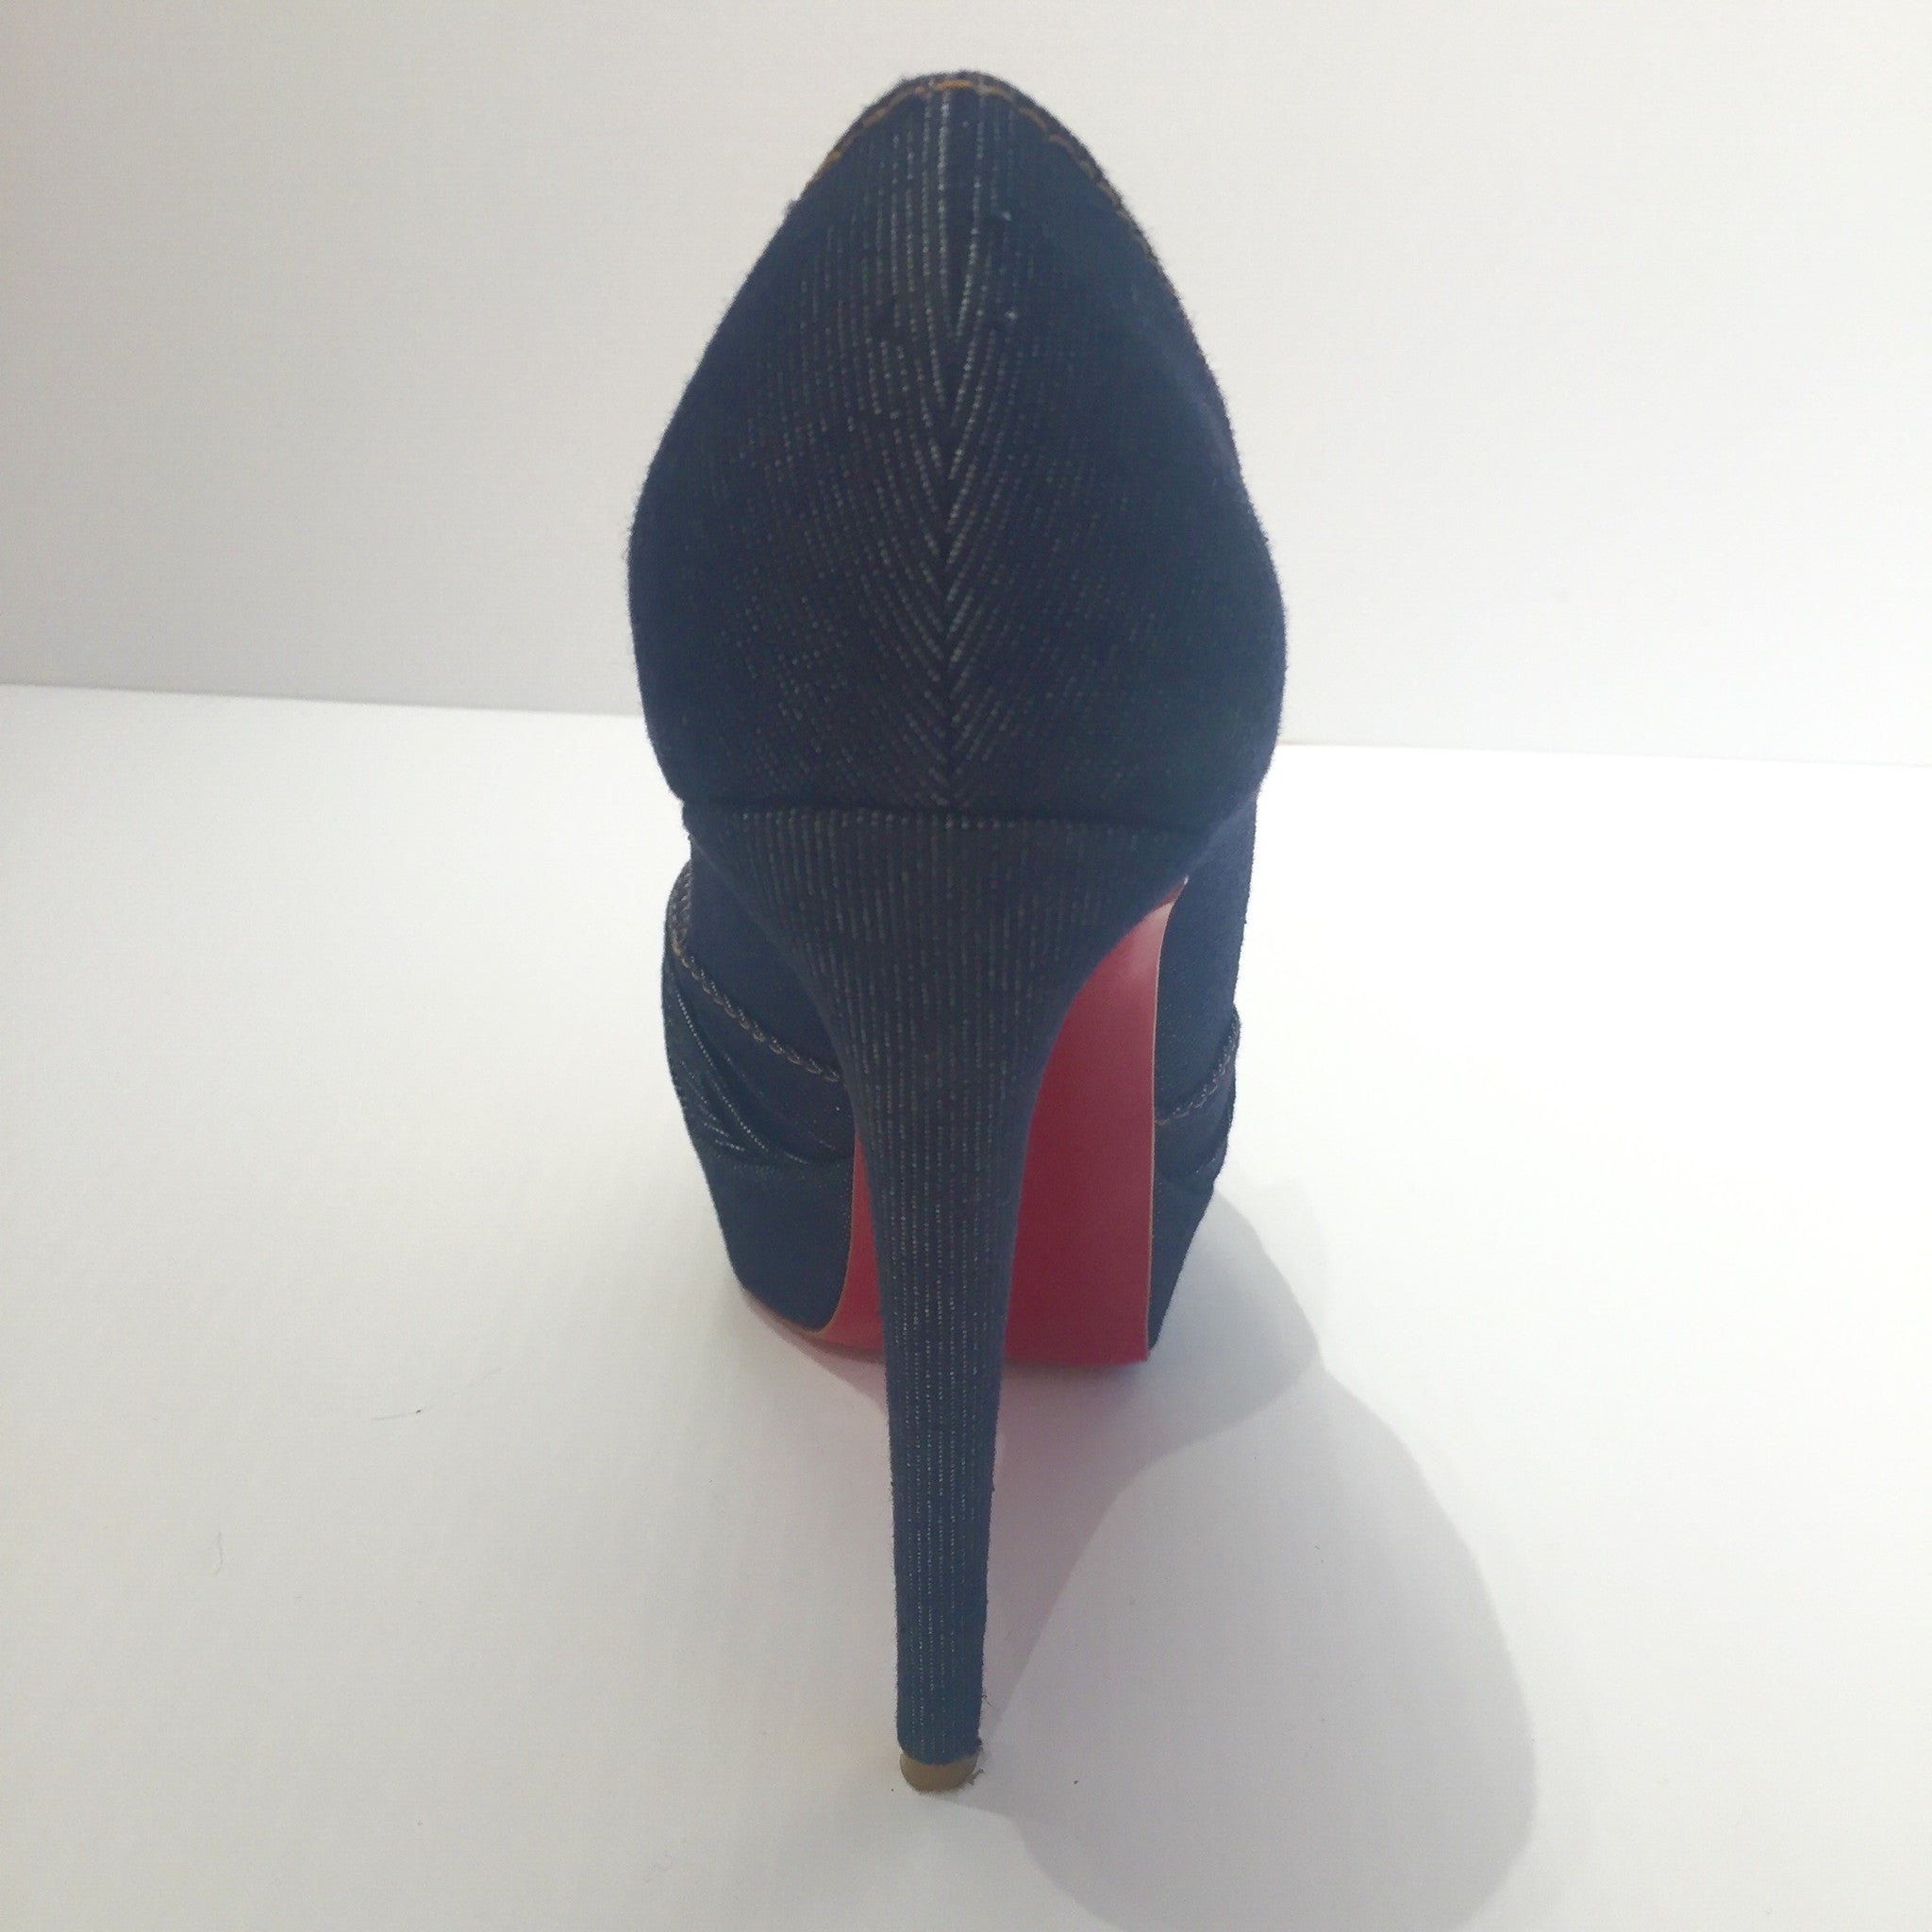 f5db07638f6a CHRISTIAN LOUBOUTIN GREISSIMO DENIM NAVY PUMPS